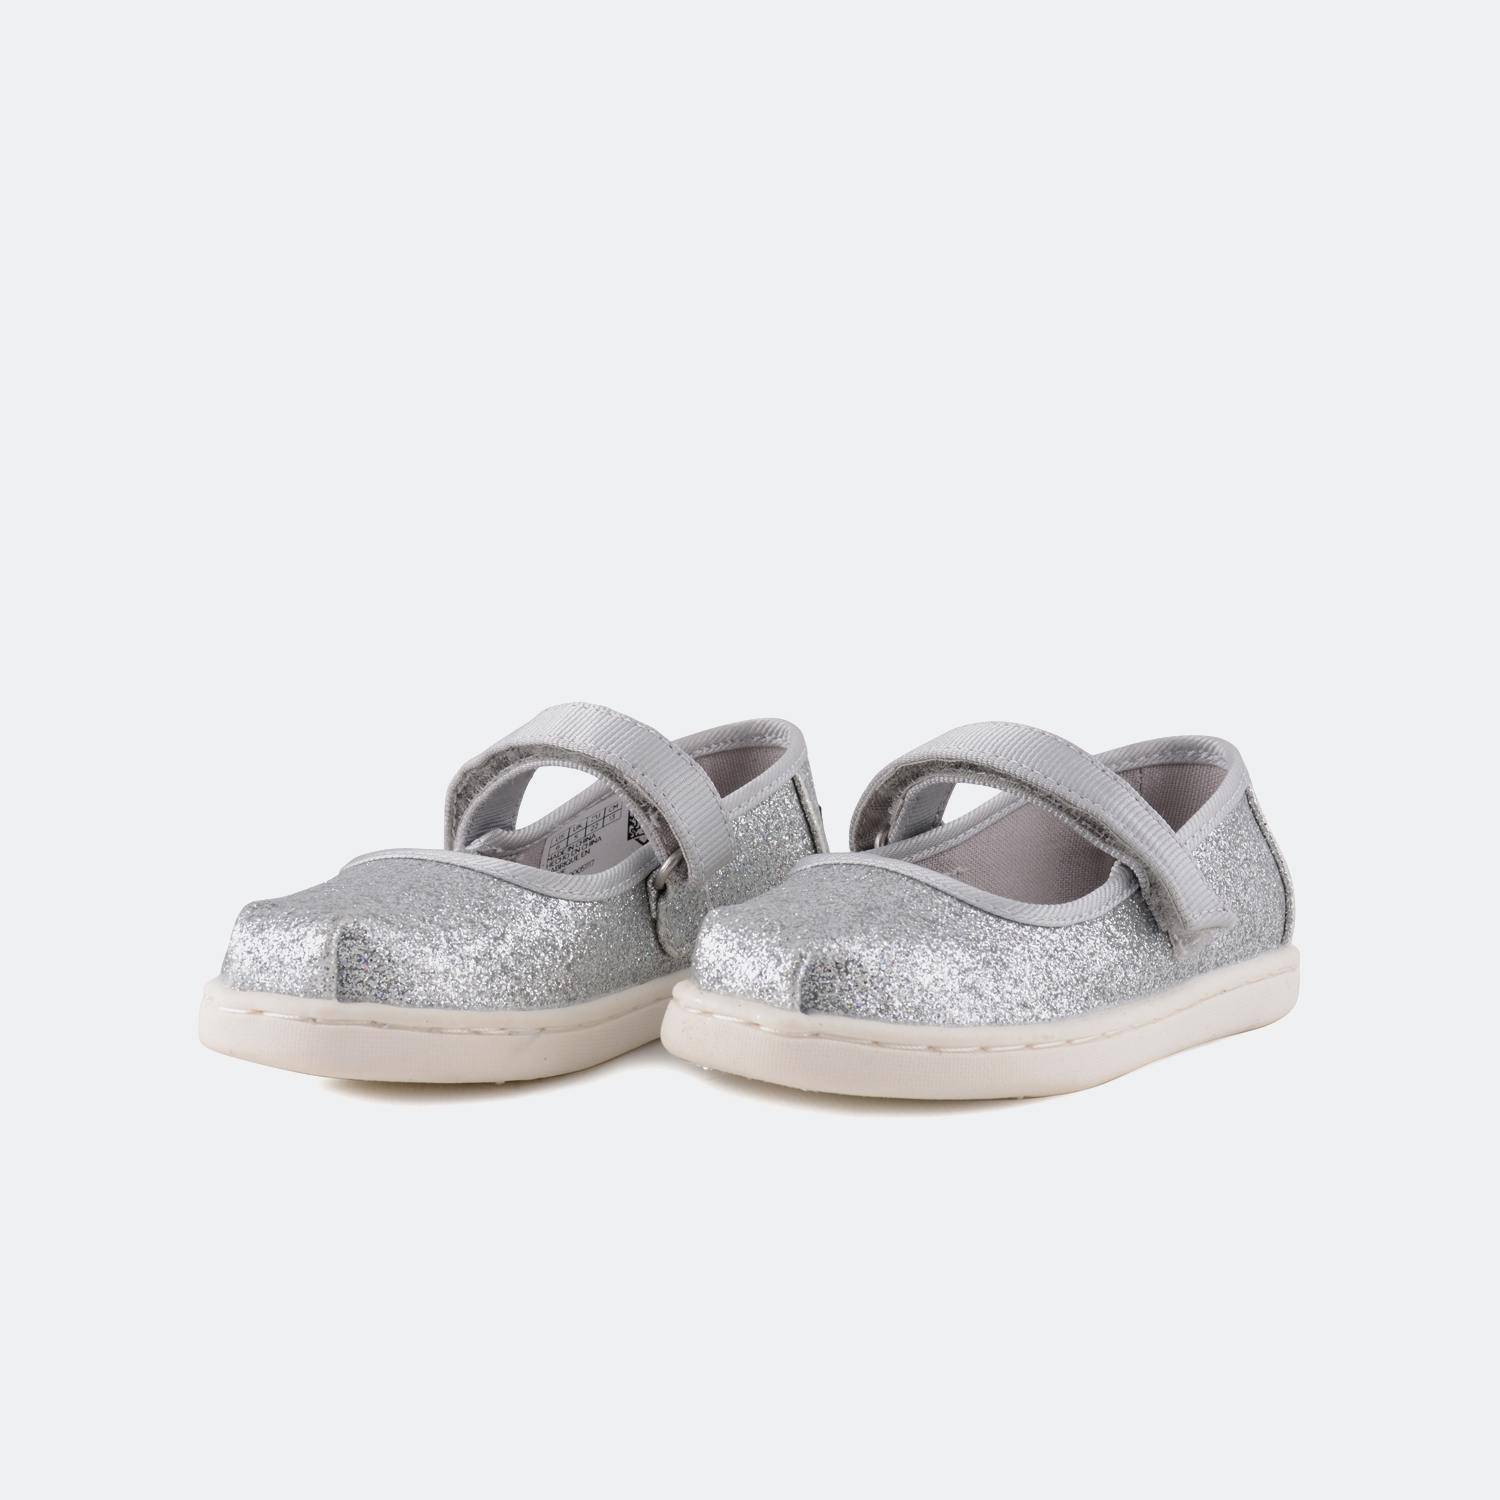 TOMS Silver Iridescent Glimmer Mary Jane | Παιδικά Παπούτσια (9000006019_9264)